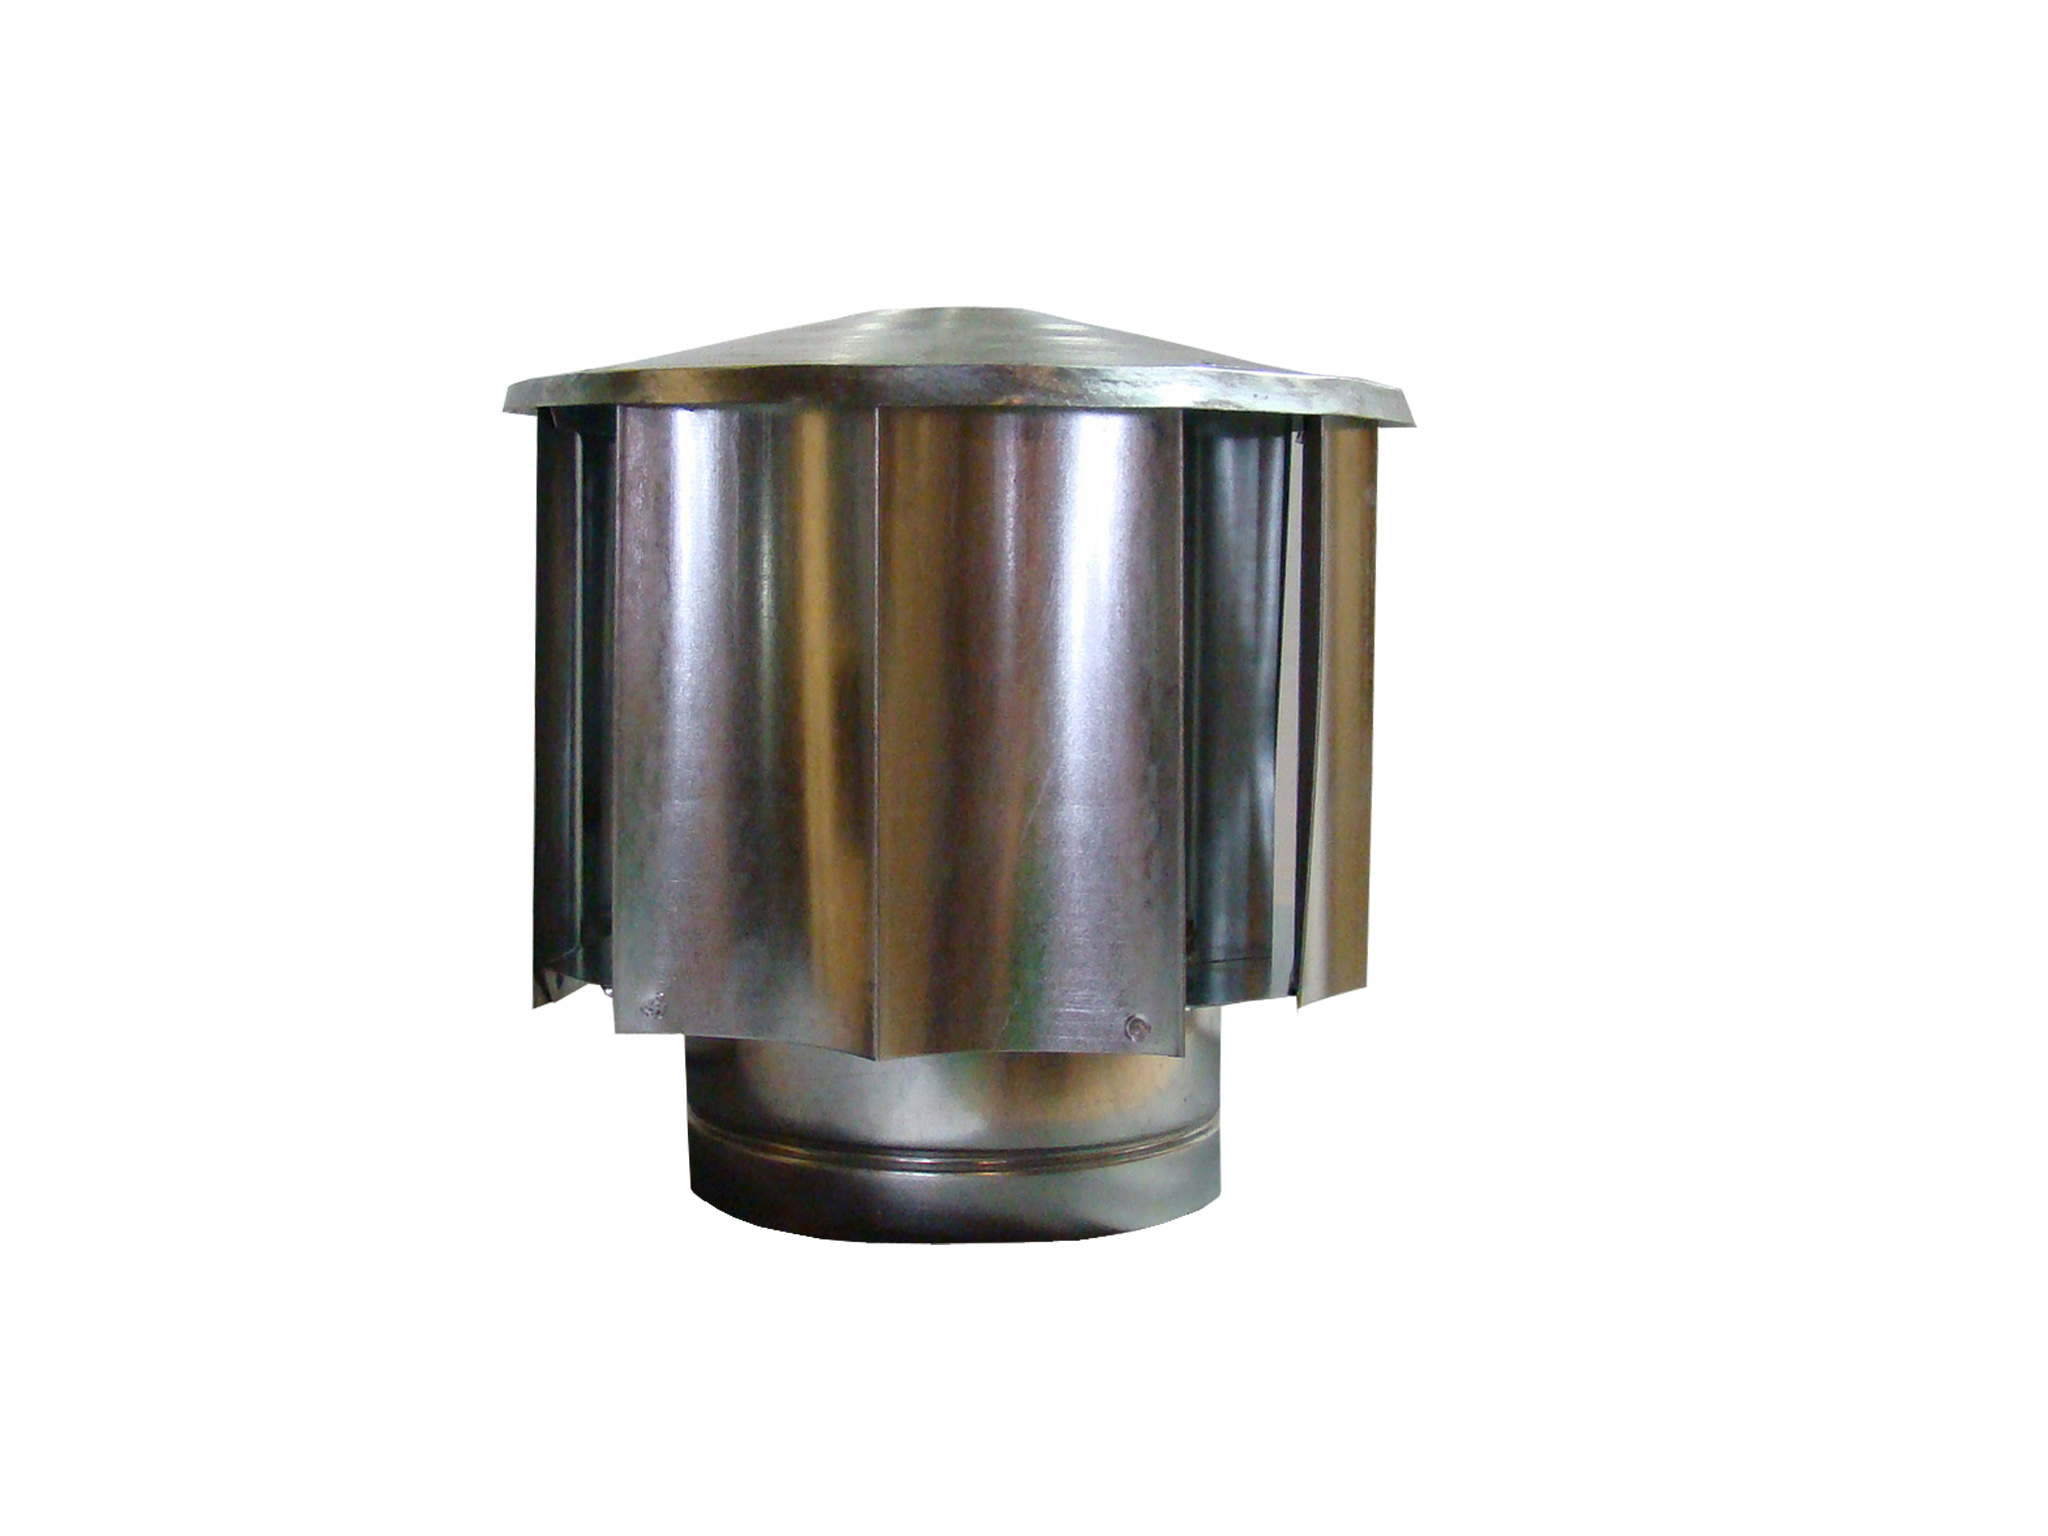 artis metals hvac vent manufacturer roof ventilators